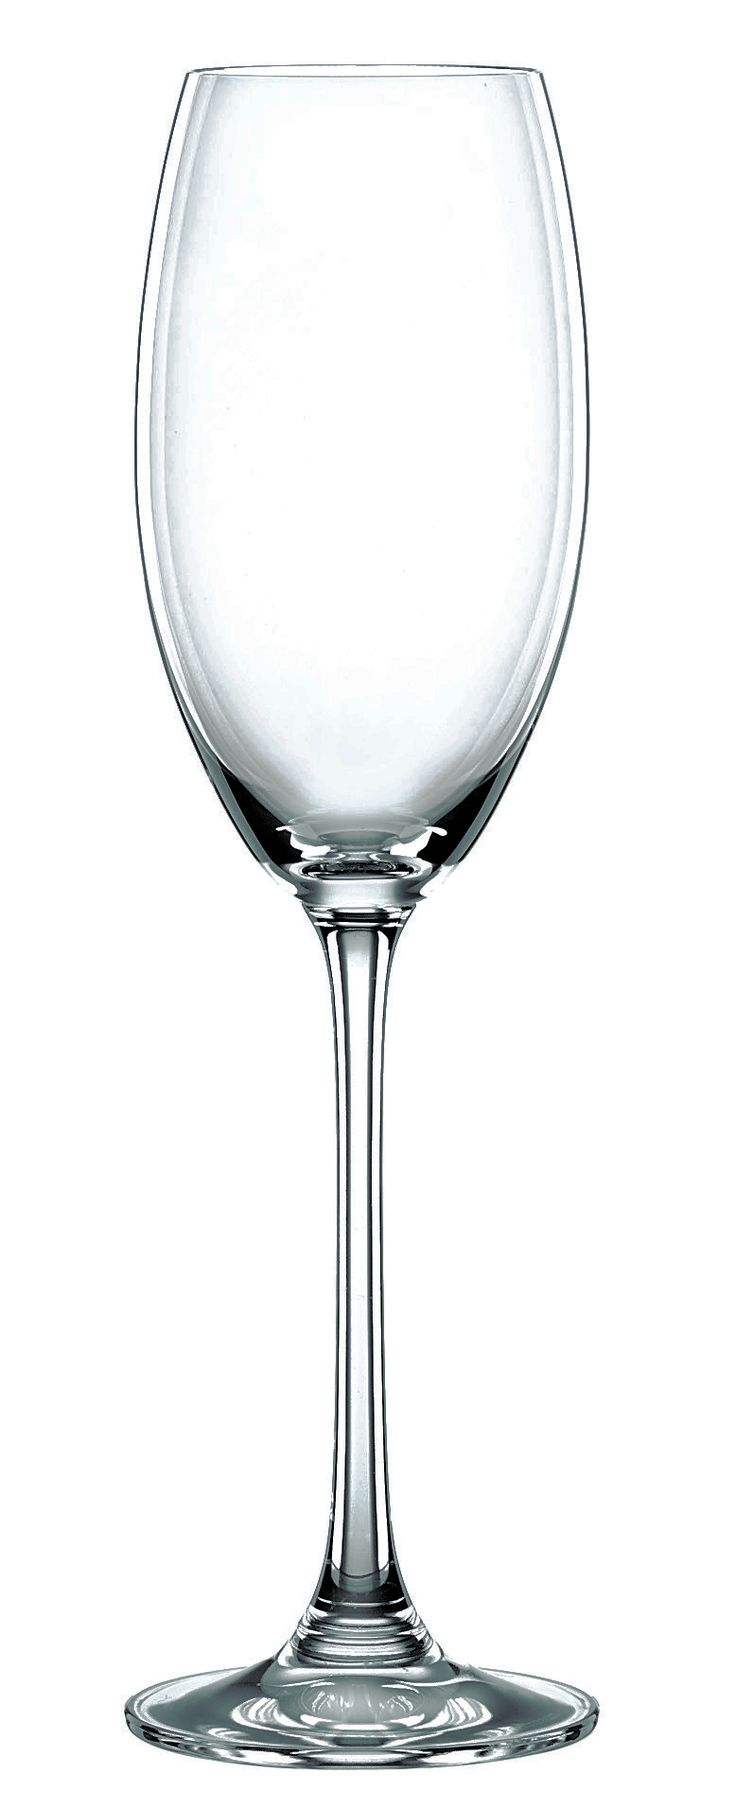 Lovely elongated stems distinguish the wine and champagne pieces, while subtle curves add understated flair to the beverage glasses. A perfect design for Prosecco and Champagne on a slender stem, the Champagne / Prosecco Glass is just the vessel for your favorite sparkling wine. Packaged here in a set of four Prosecco galsses.